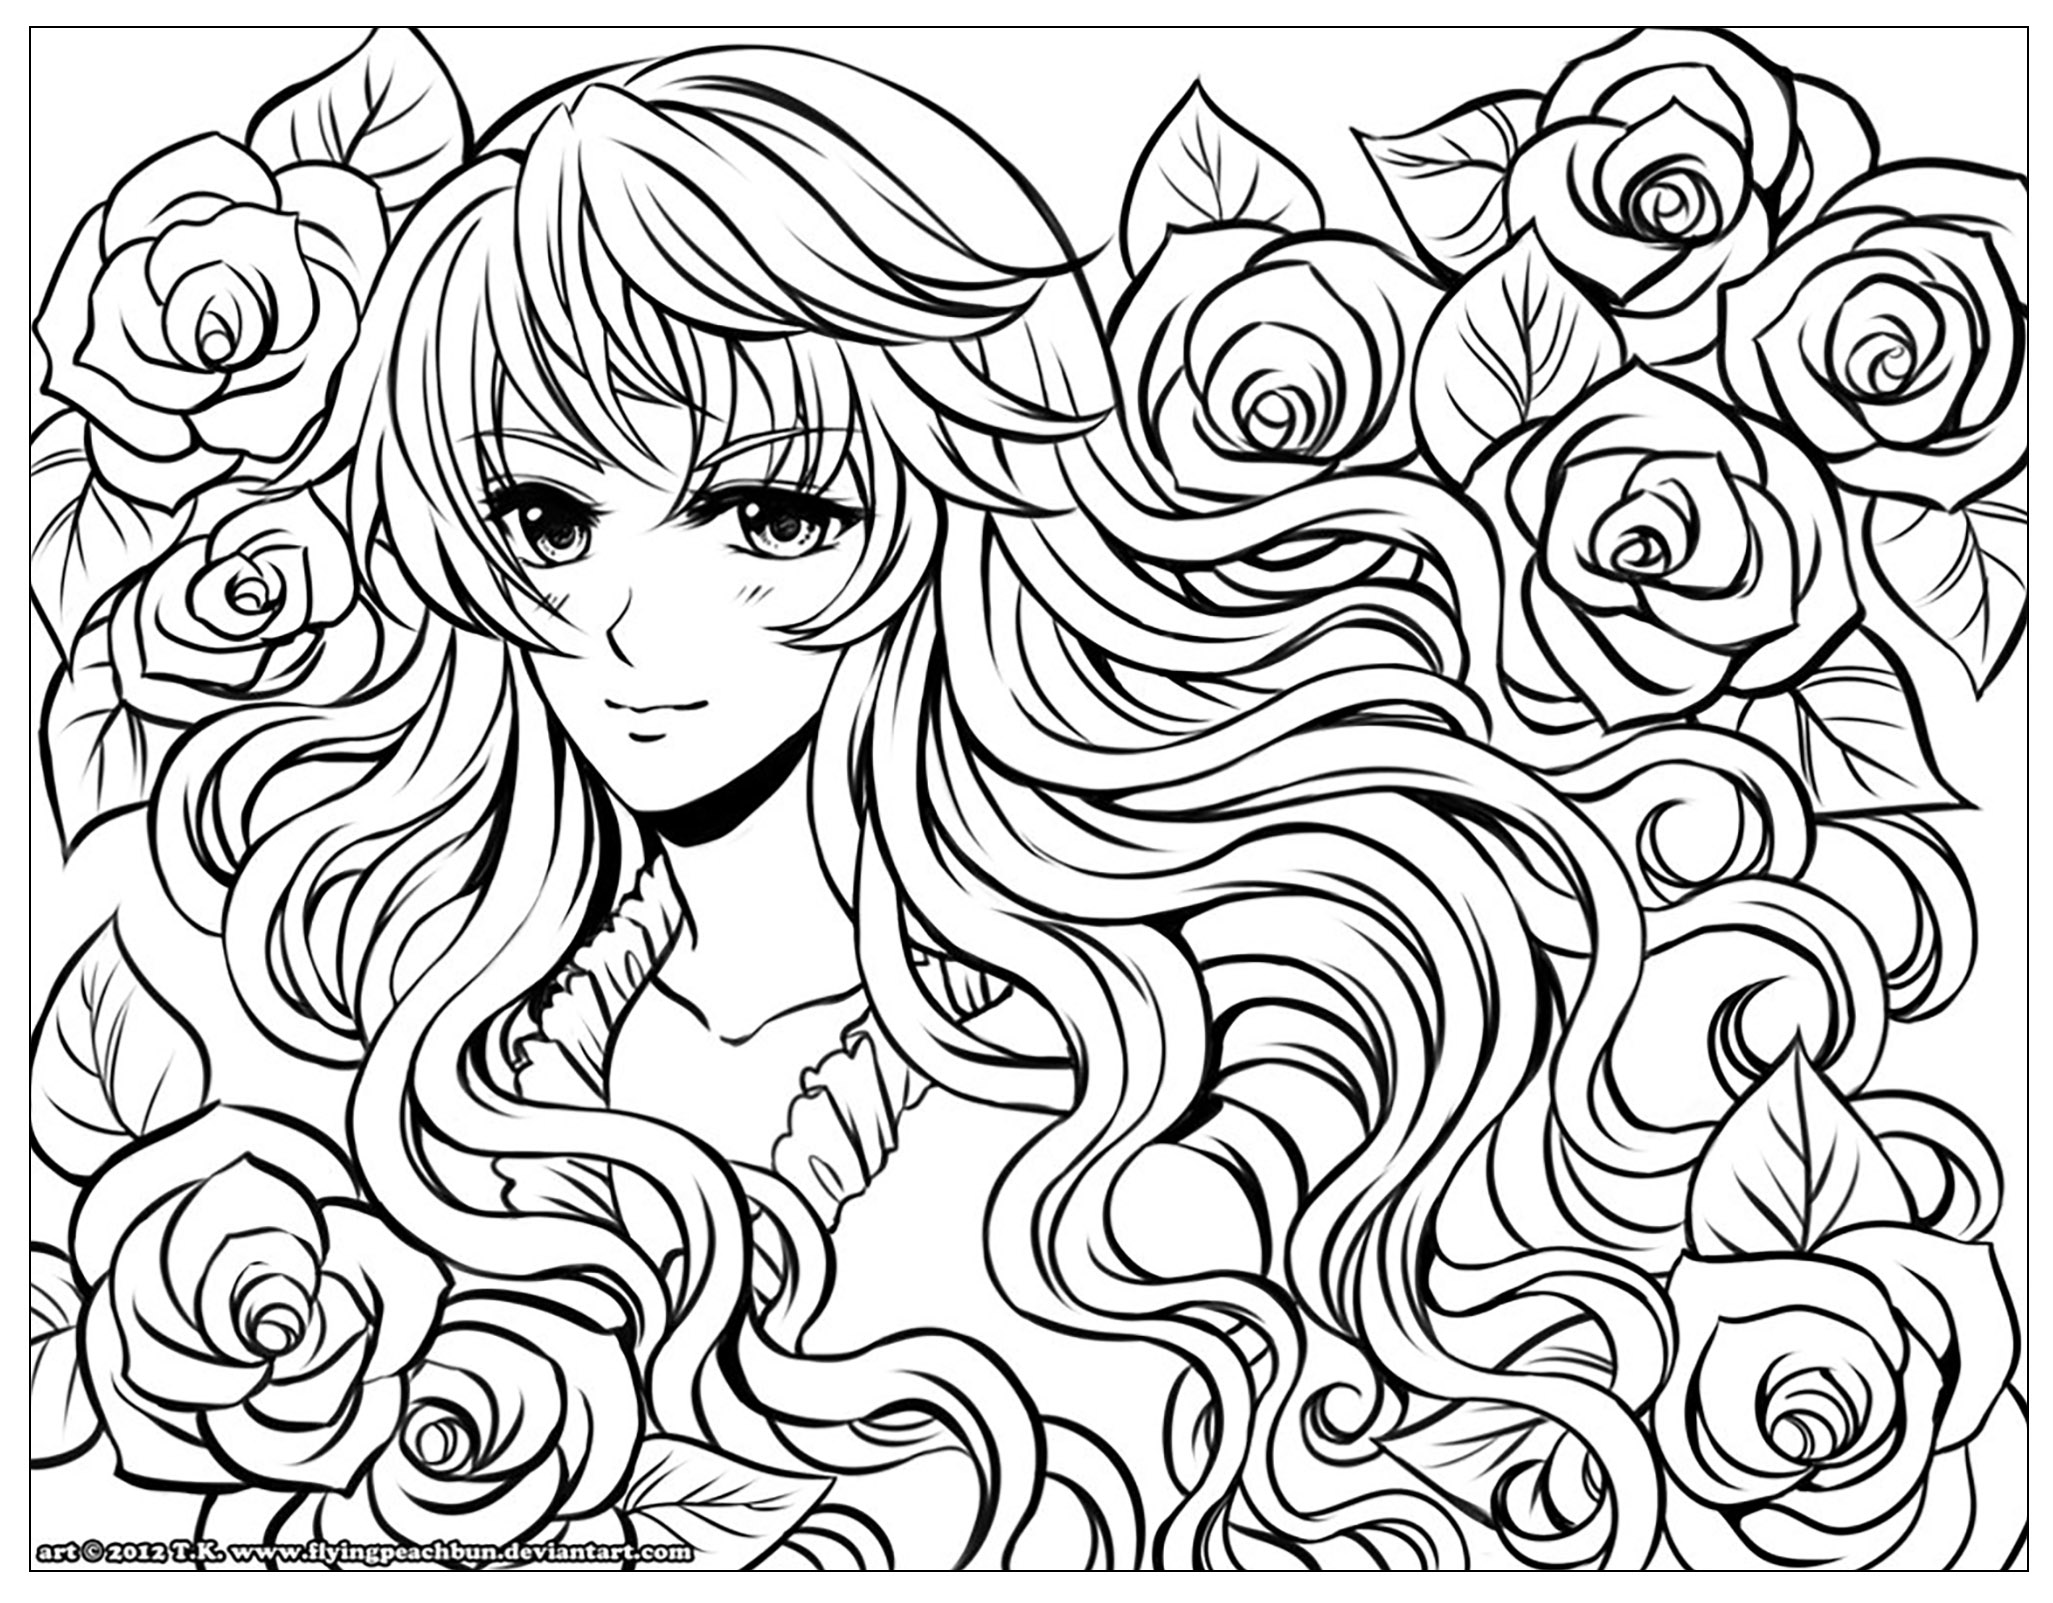 Elegant Manga Girl With Flowers In Her Hair